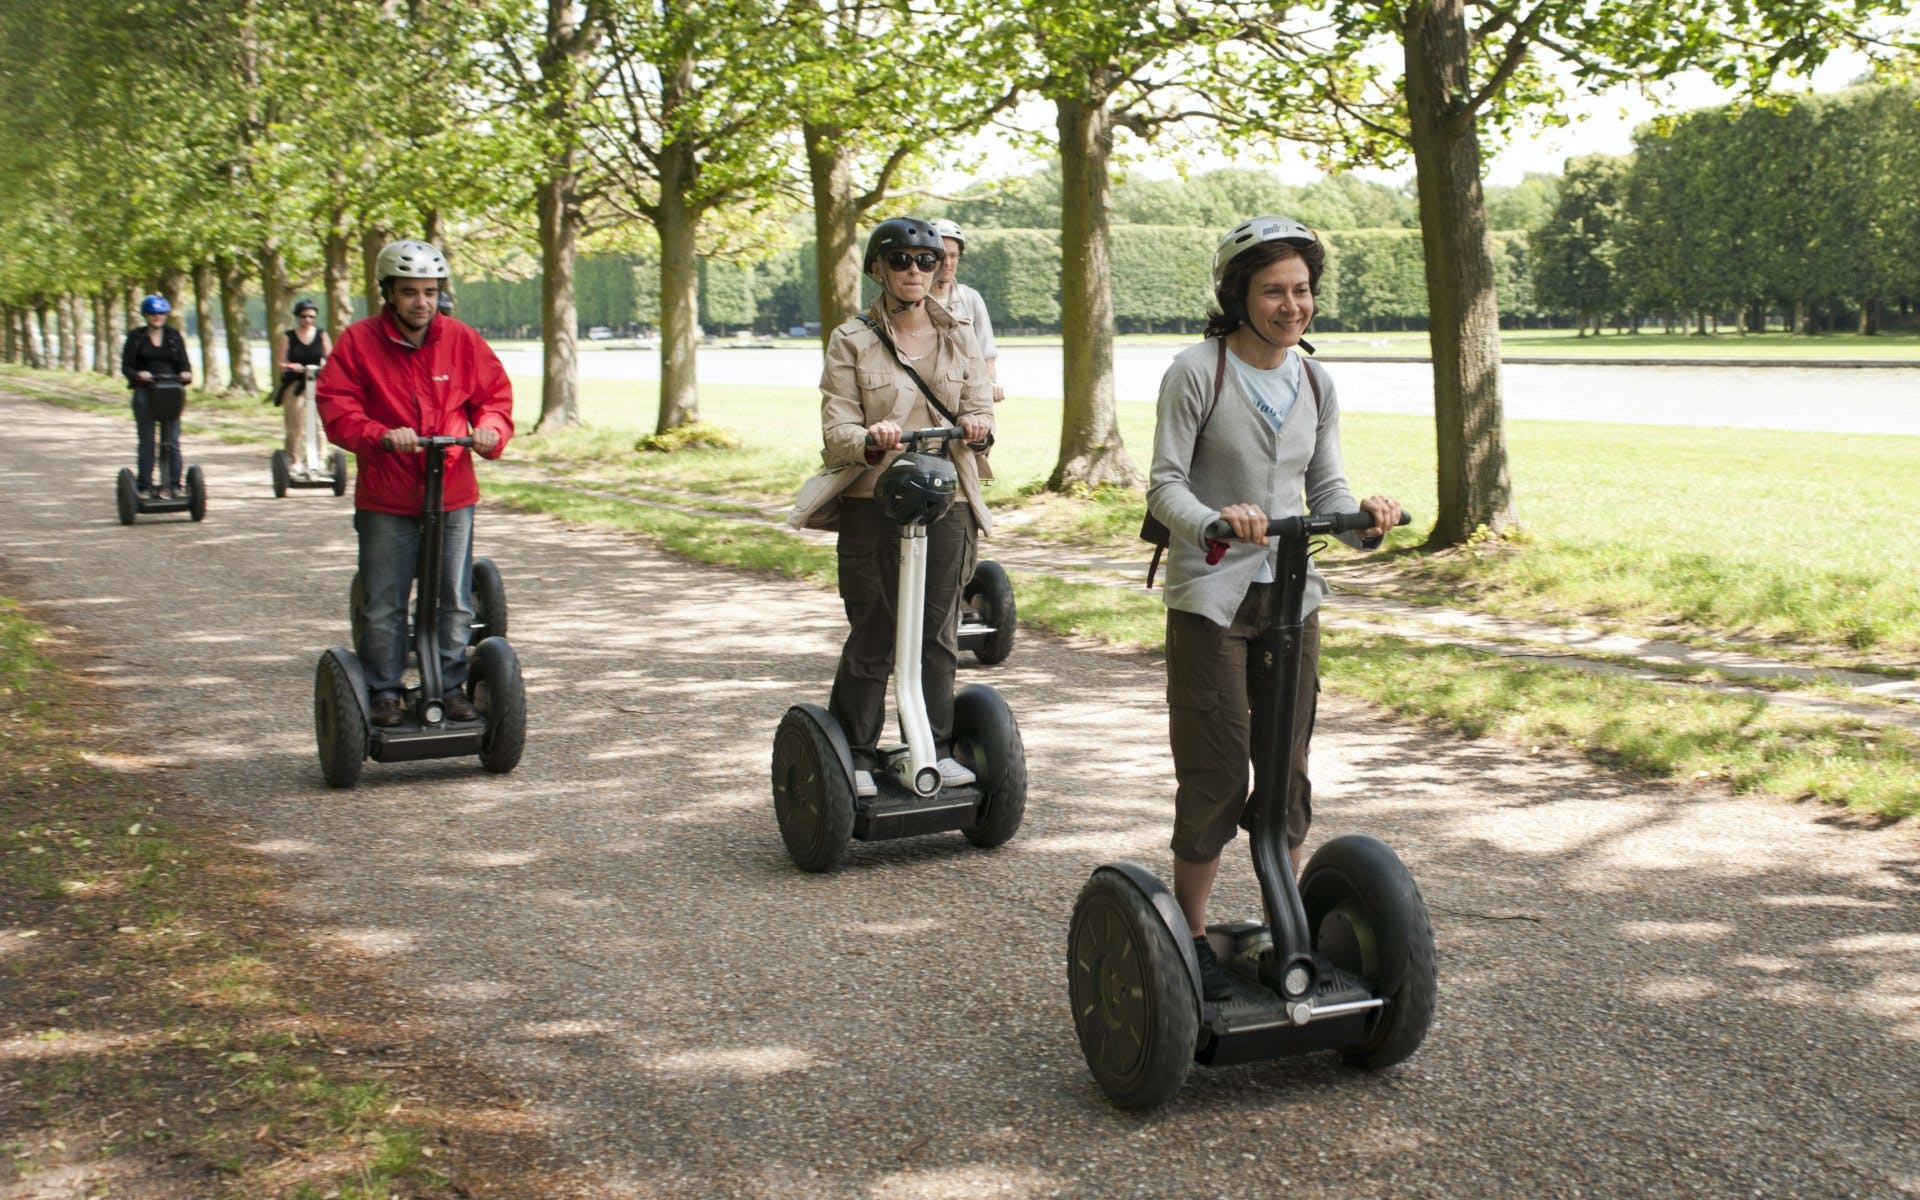 palace of versailles segway tour at castle park -3